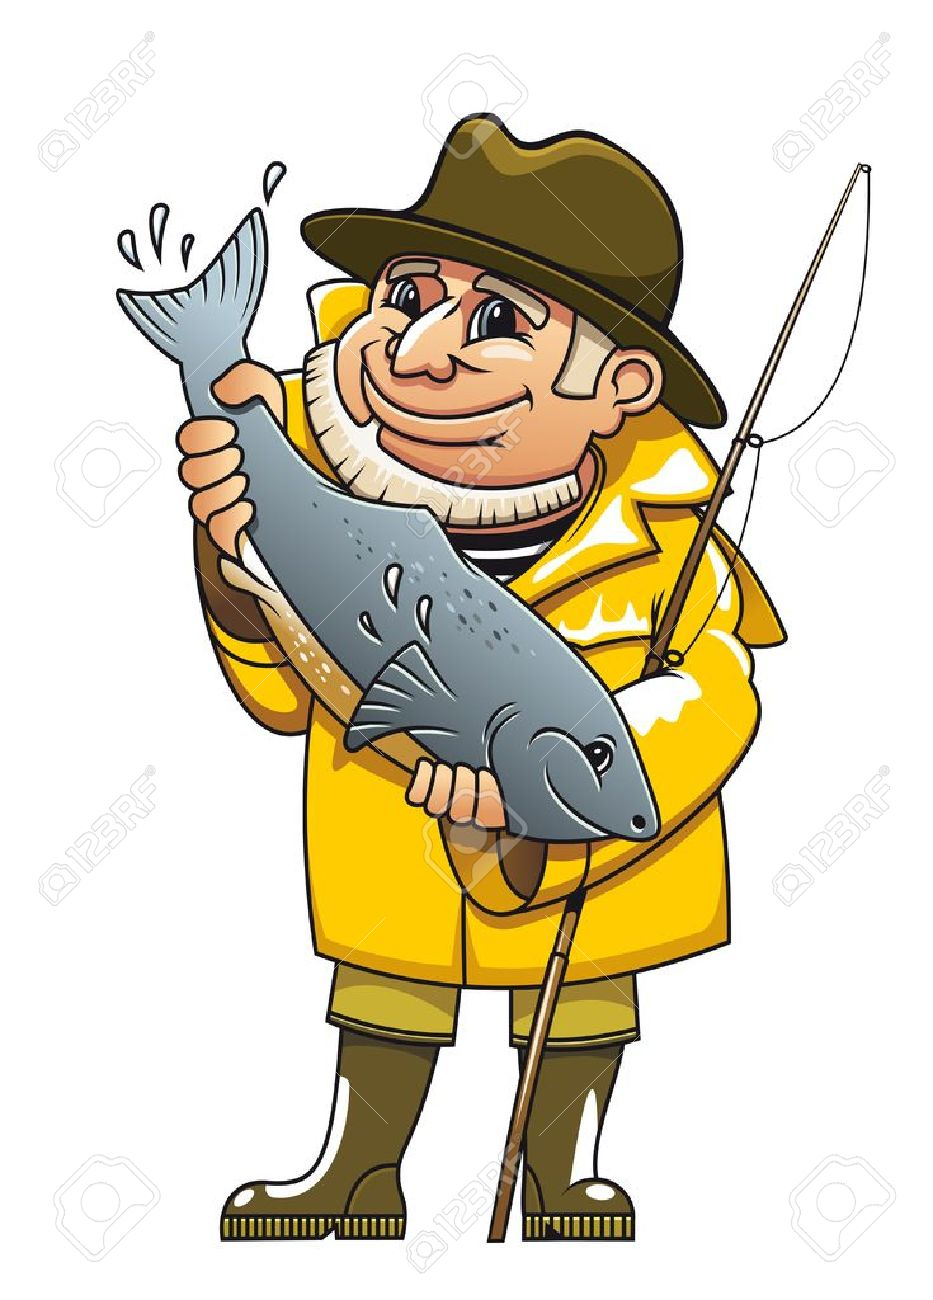 Survival Fishing - American Preppers Network   Survival fishing, Survival, Catching  fish